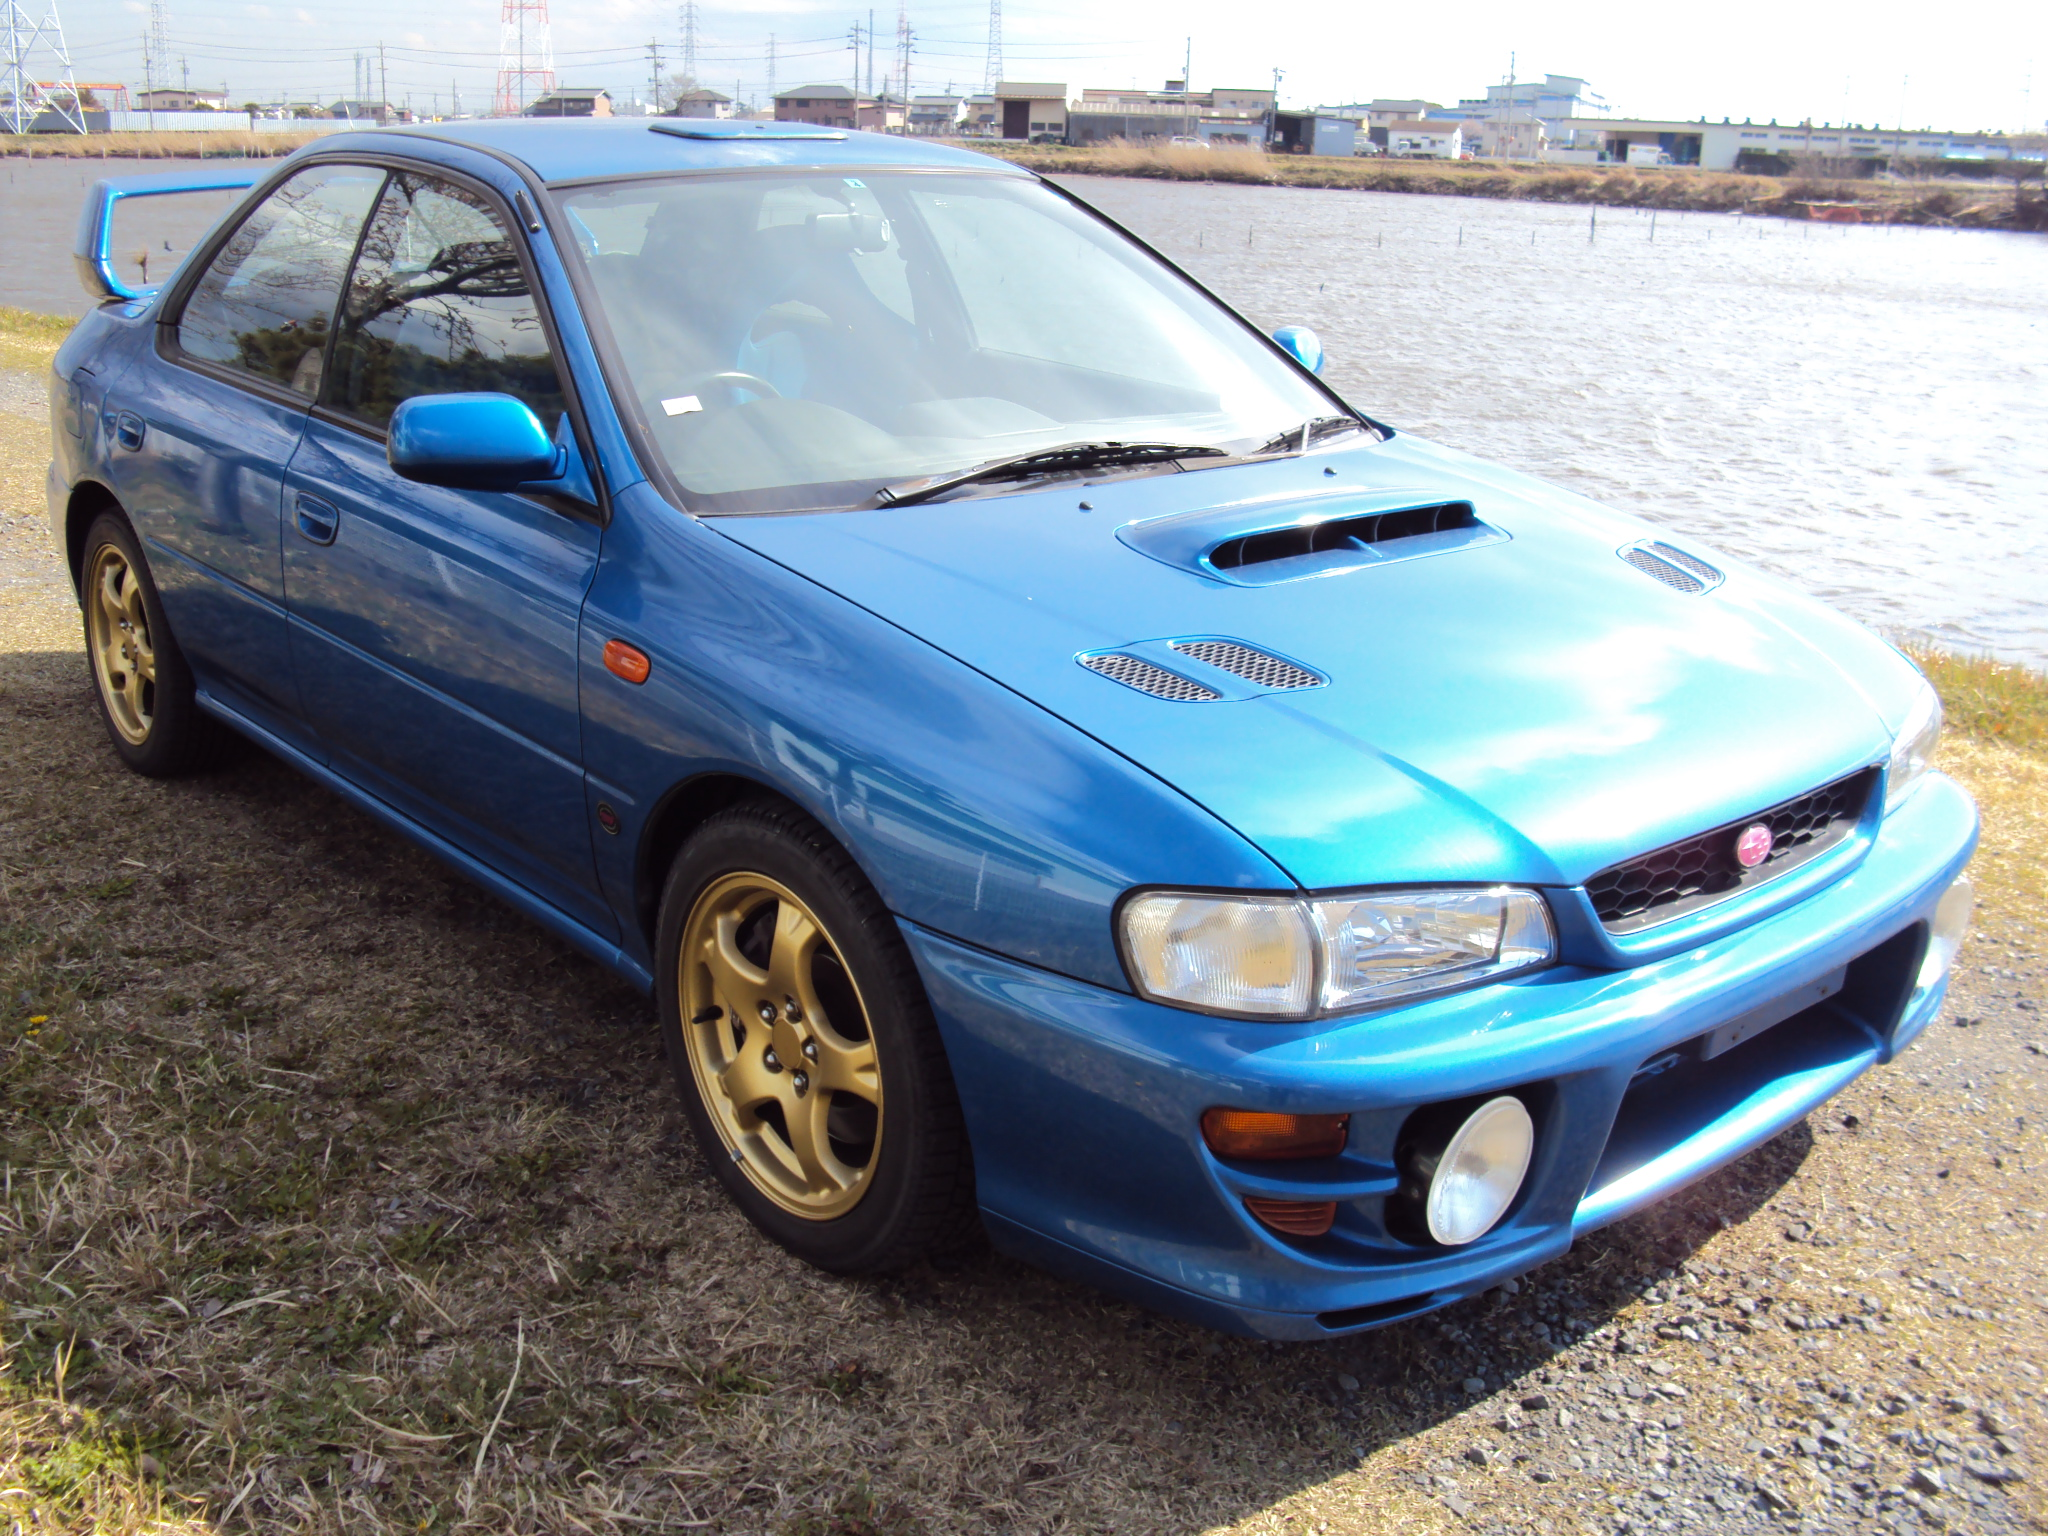 subaru impreza wrx wrx ra 4wd 1999 used for sale. Black Bedroom Furniture Sets. Home Design Ideas